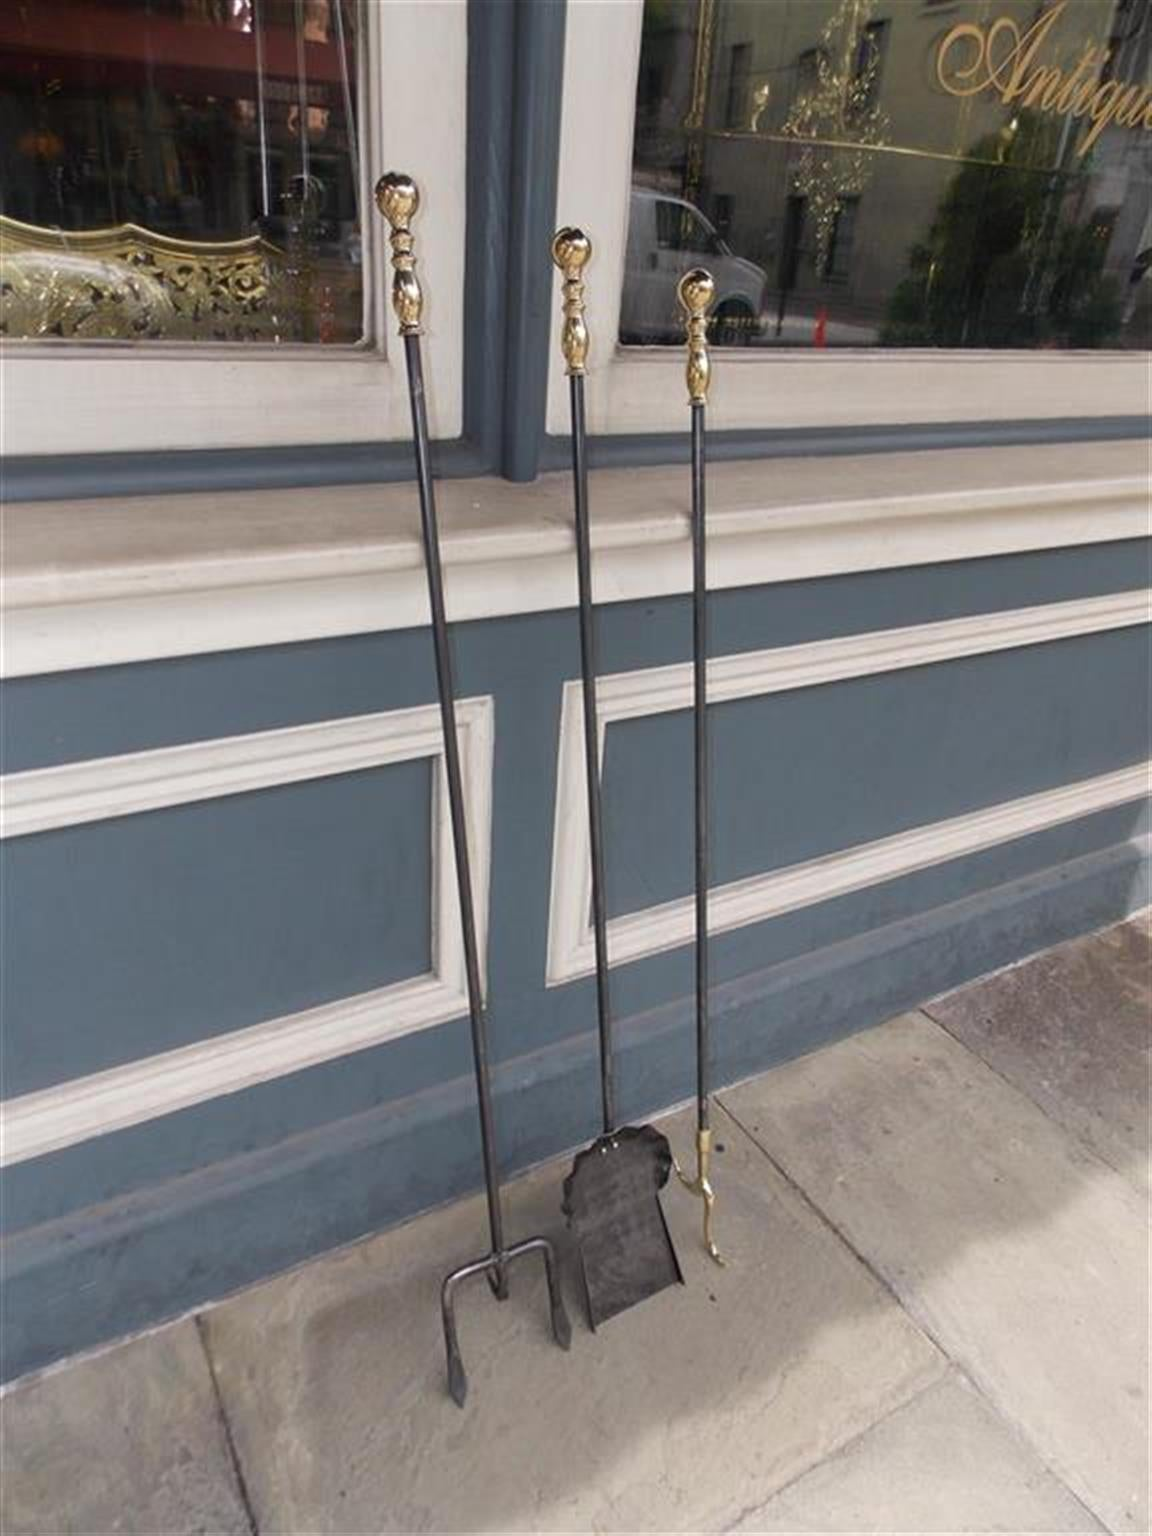 Set of American monumental wrought iron and brass fire tools with turned bulbous finial handles. Set consist of shovel, poker, and fork, 19th century.